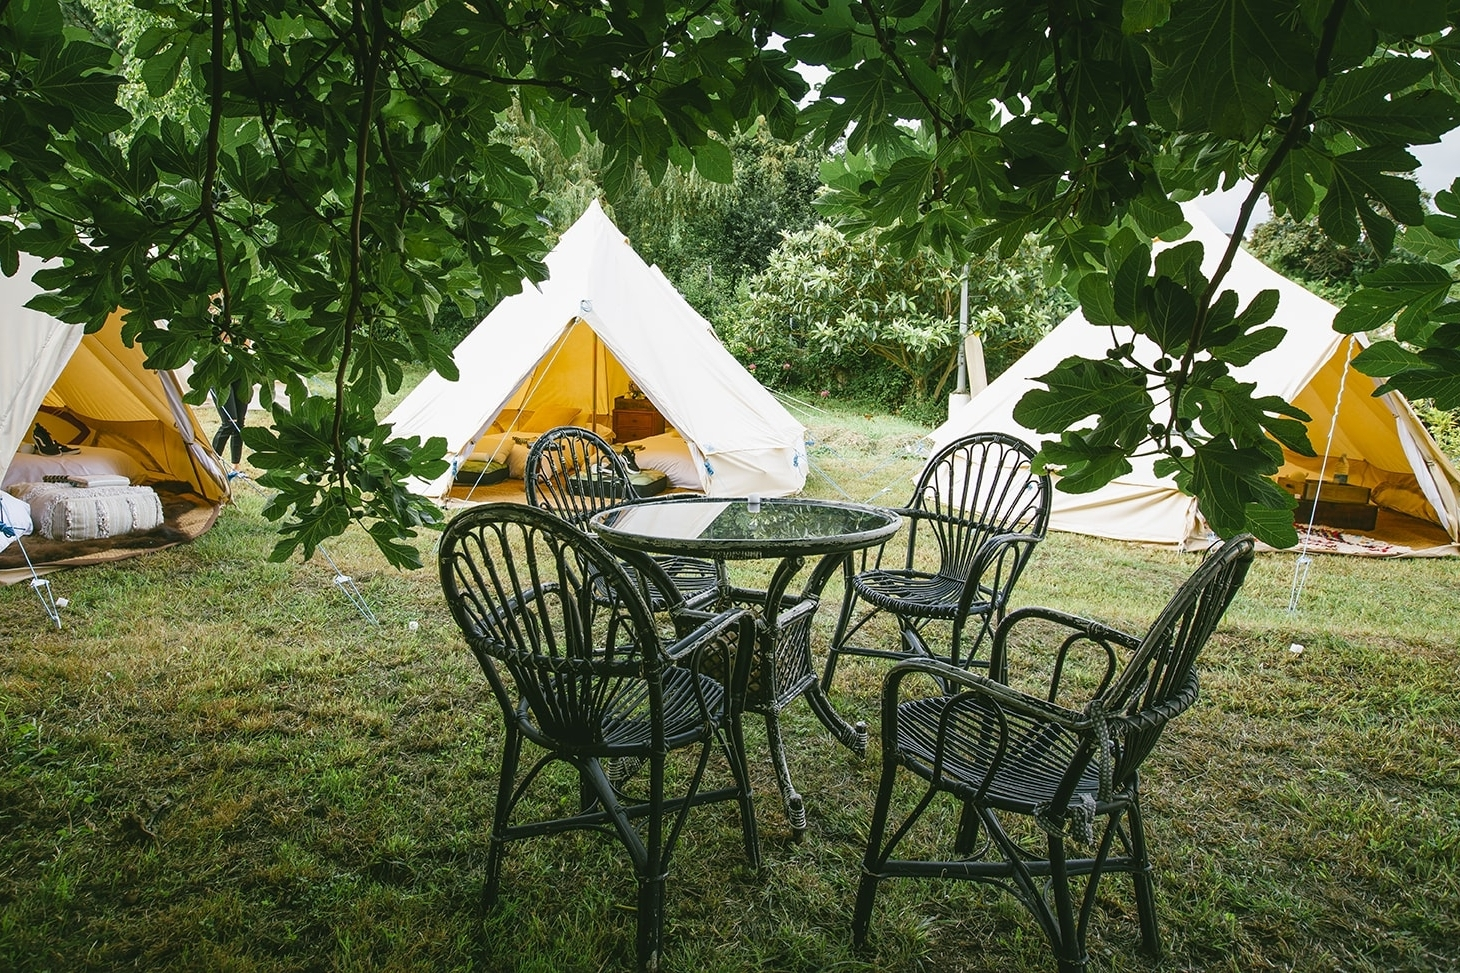 Whatever your event - birthday, anniversary, surprise proposal, kids party - if you want one tent , two tents or a whole village Snazzy Camp can set up wherever you choose.